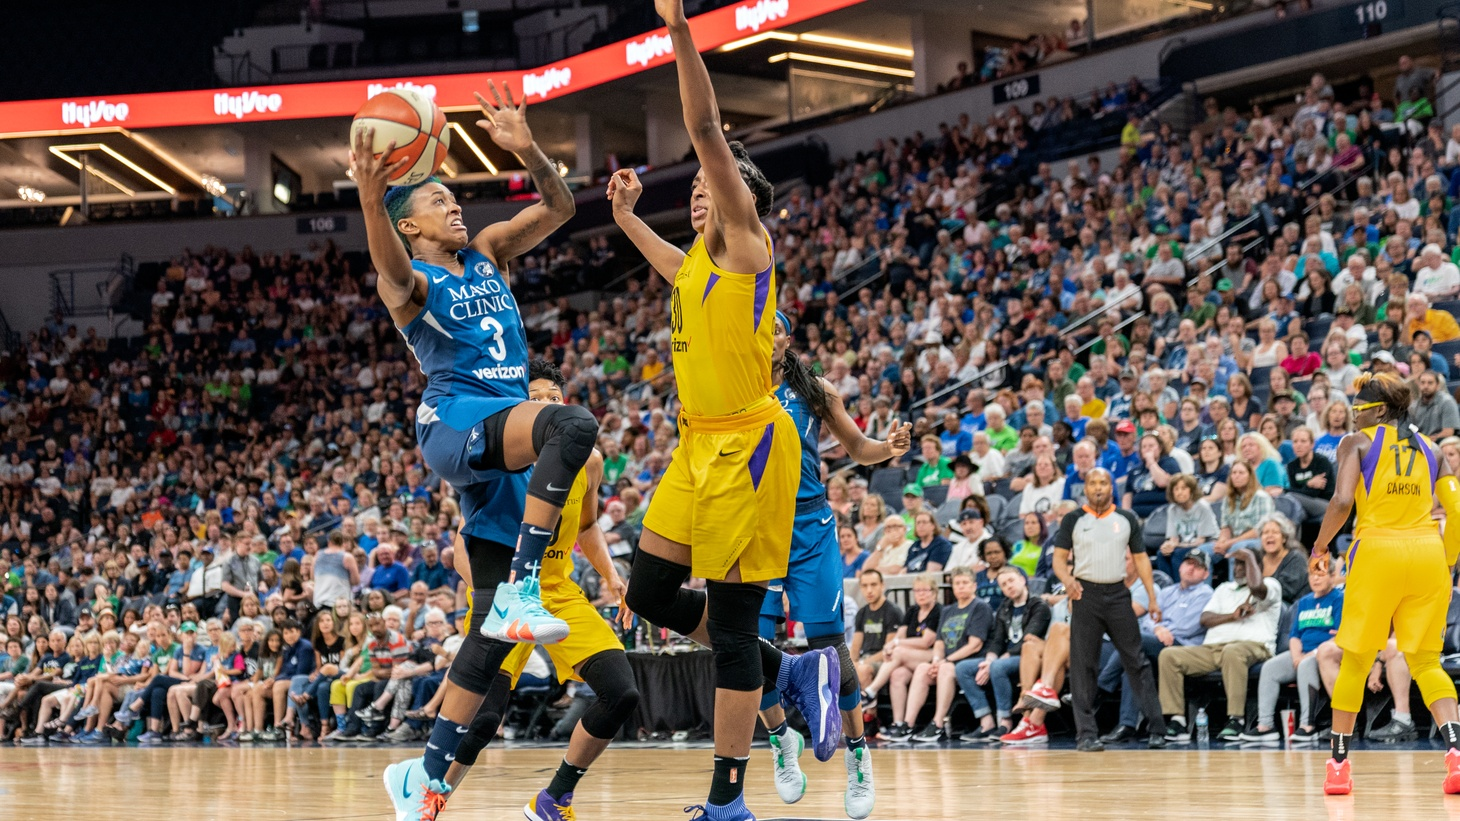 Danielle Robinson drives to the basket as Nneka Ogwumike guards her in the Minnesota Lynx vs Los Angeles Sparks game at Target Center, 2018.